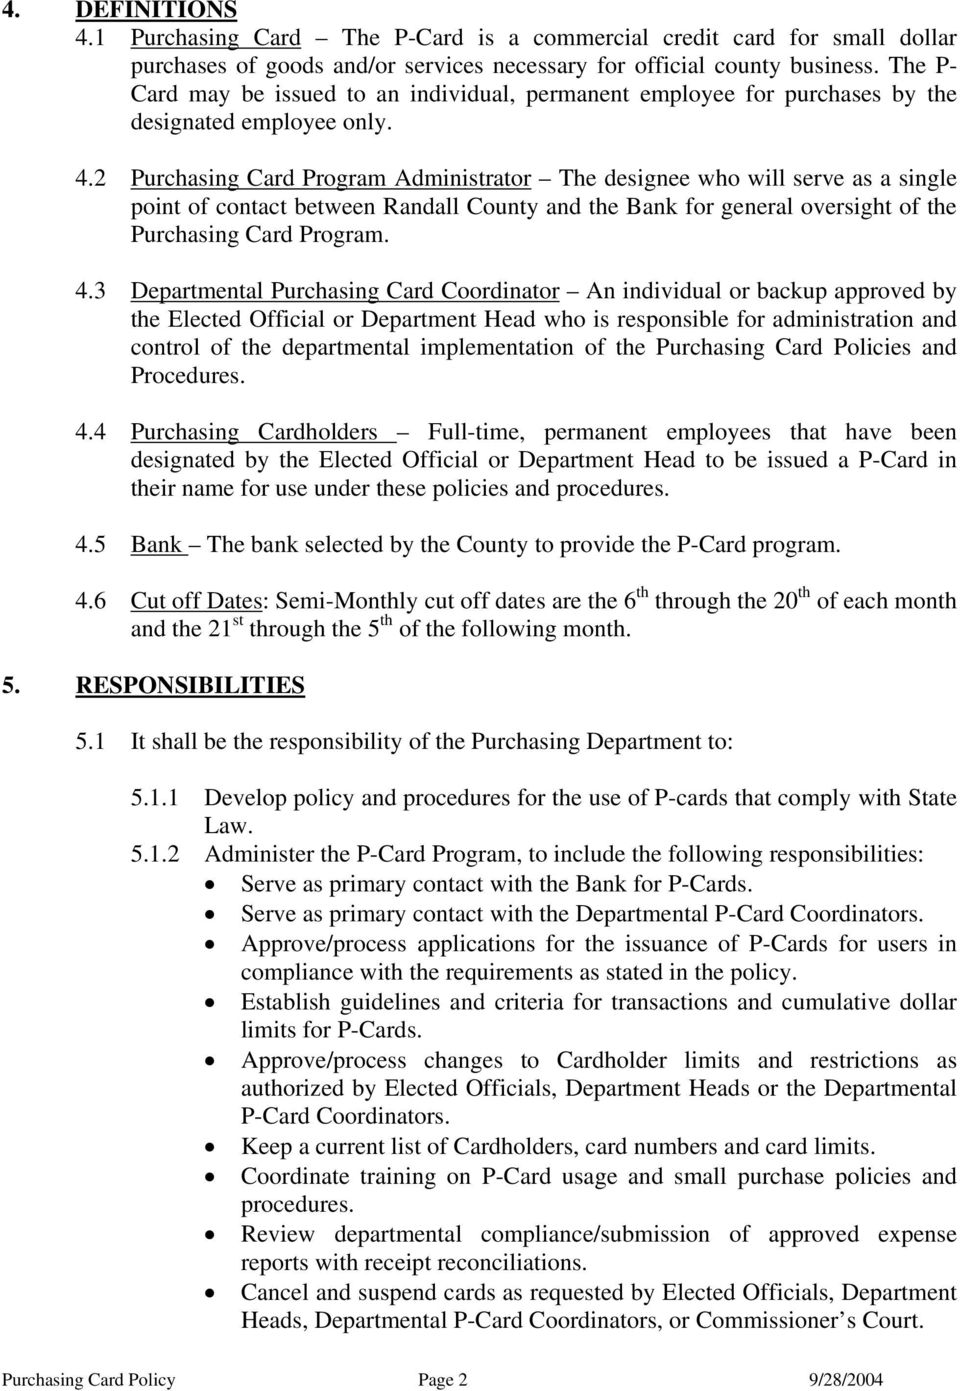 2 Purchasing Card Program Administrator The designee who will serve as a single point of contact between Randall County and the Bank for general oversight of the Purchasing Card Program. 4.